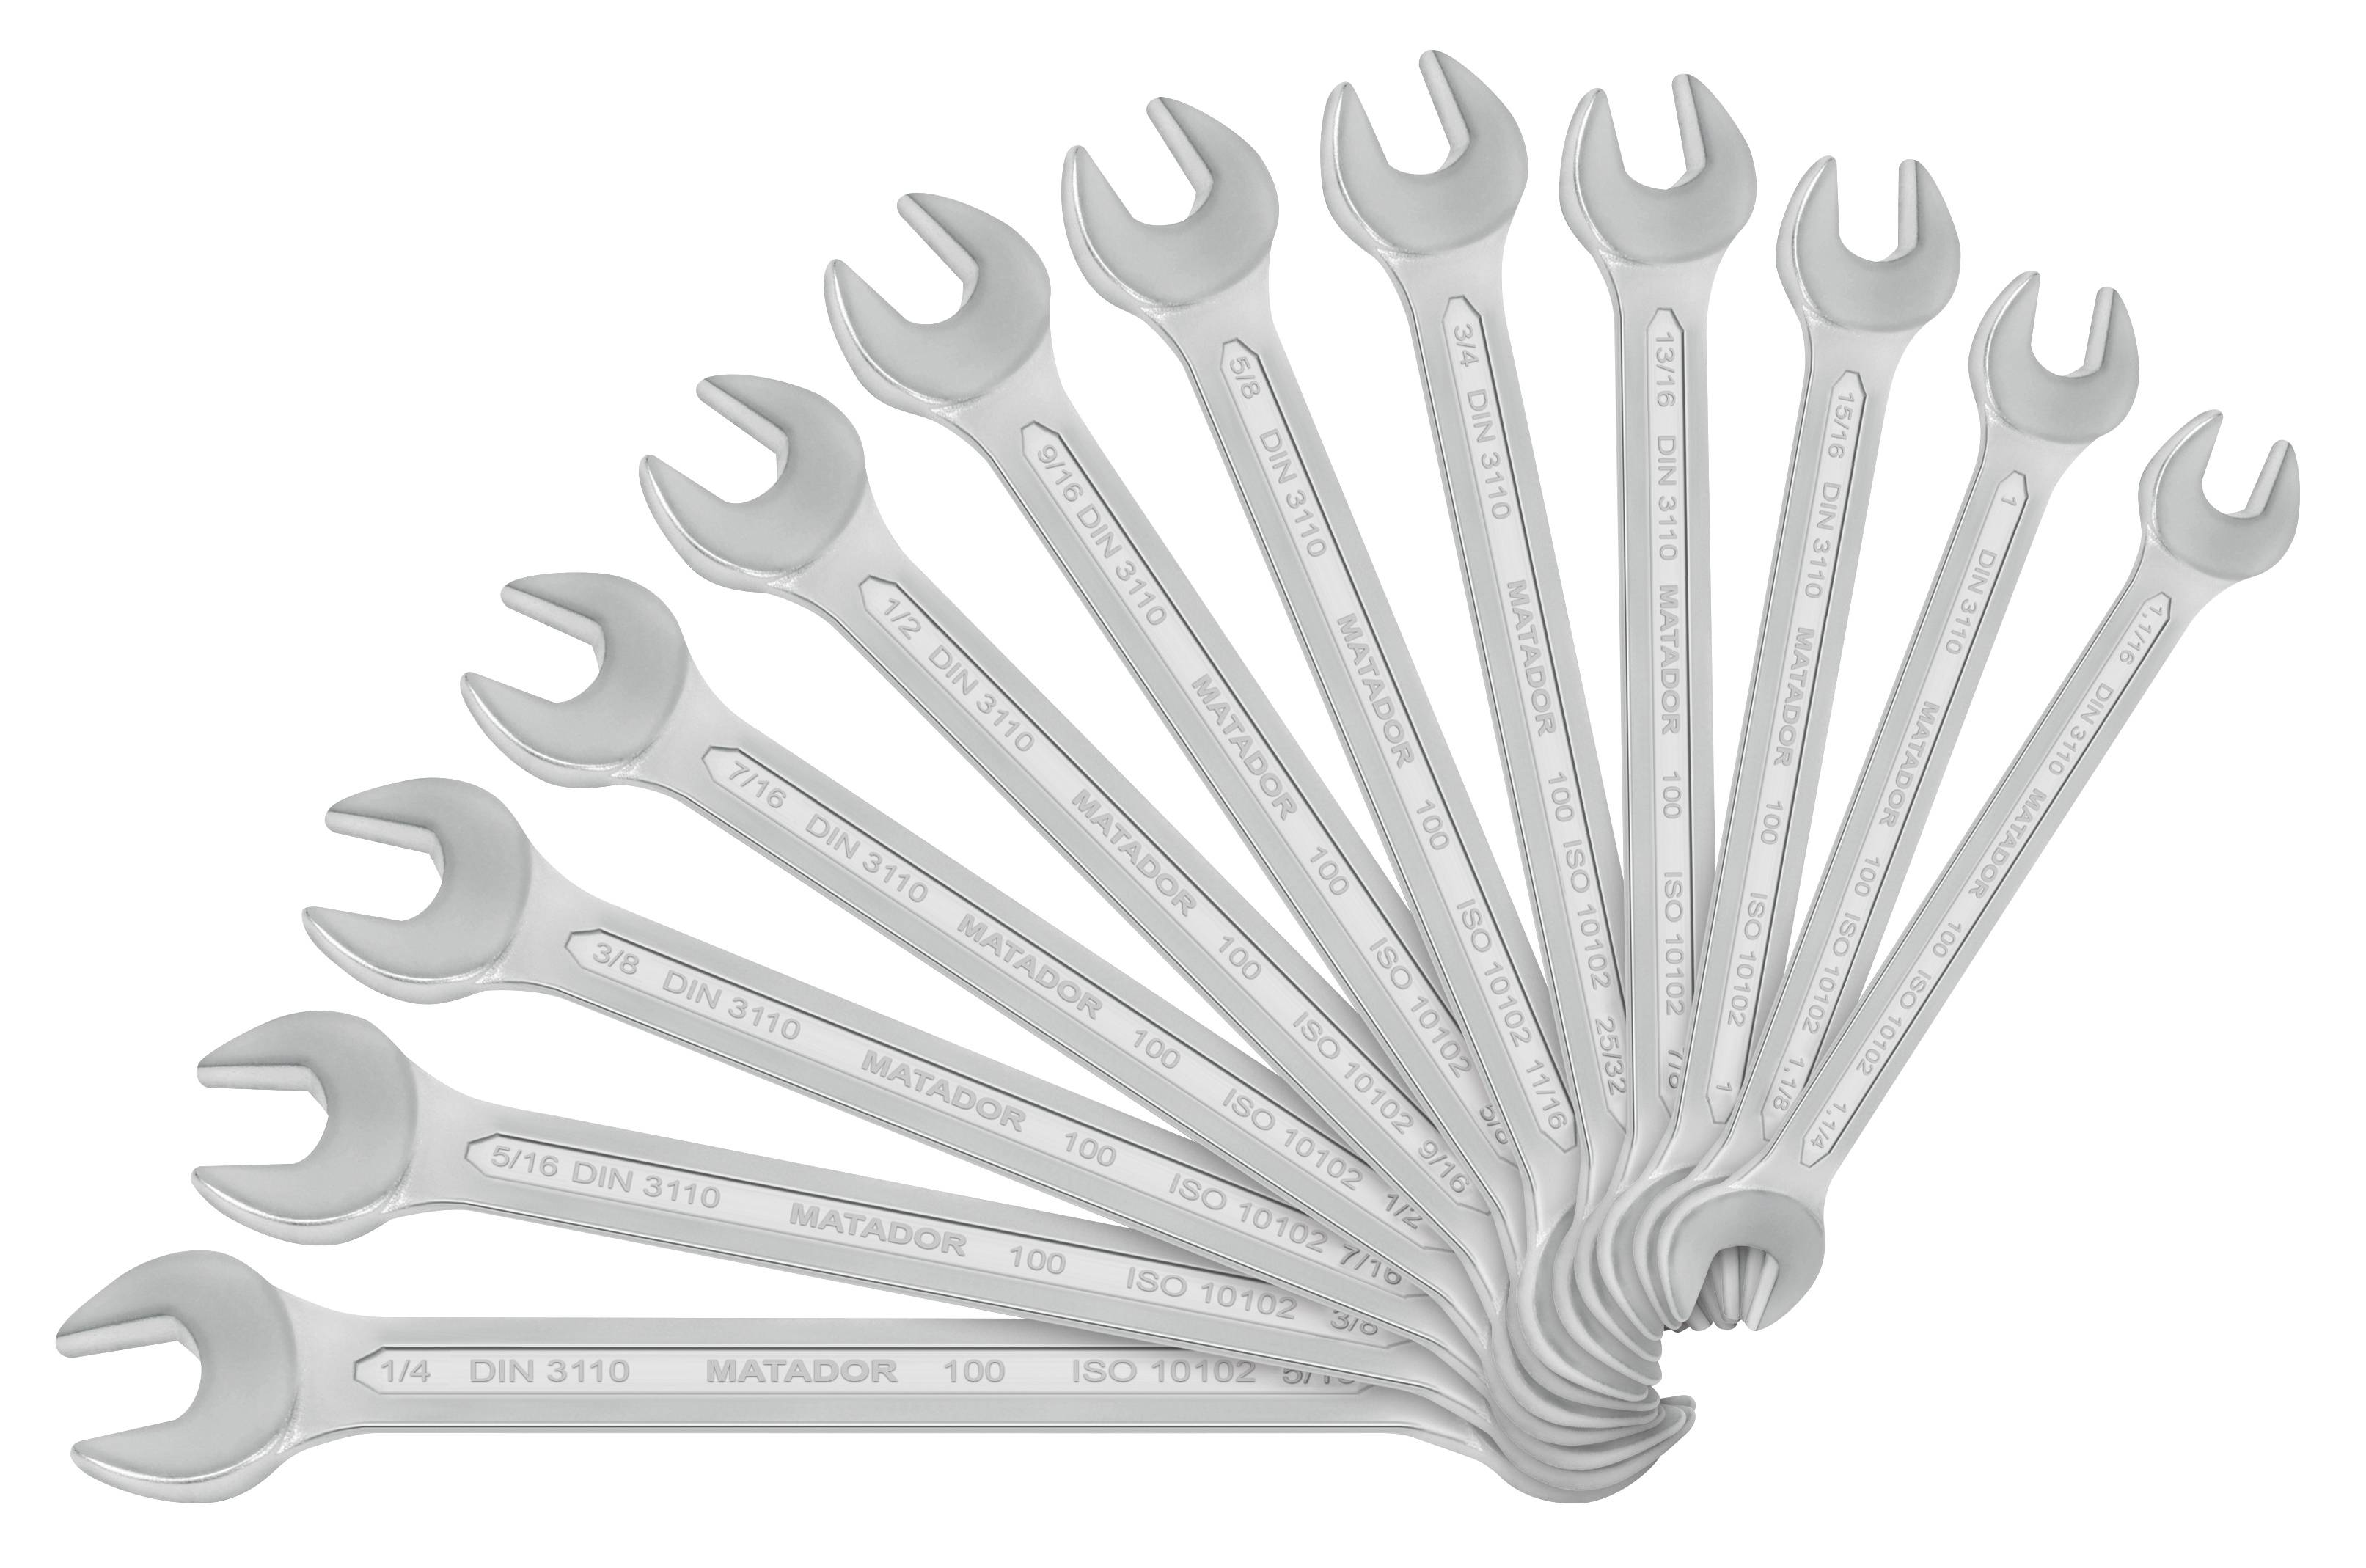 Double-ended open ring spanner set